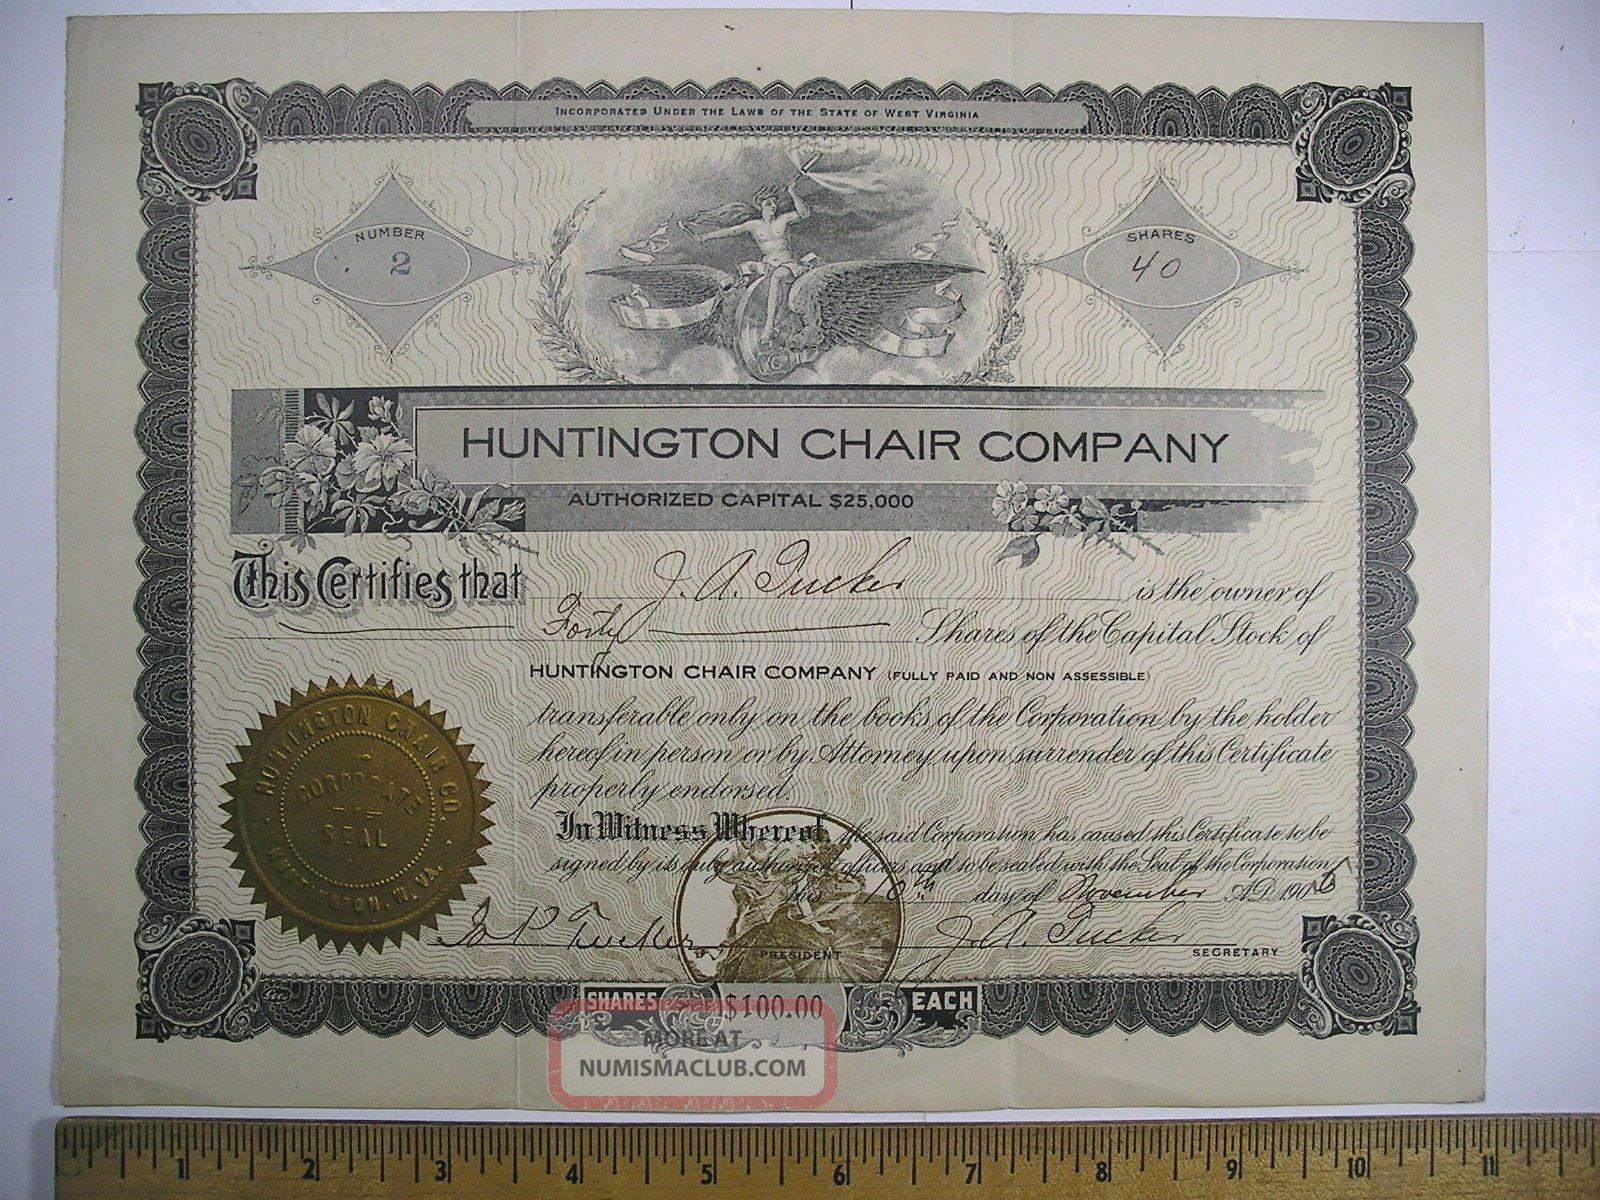 1905 Stock Cert No.  2 Huntington Chair Company Huntington,  Wv 40 Shares Stocks & Bonds, Scripophily photo